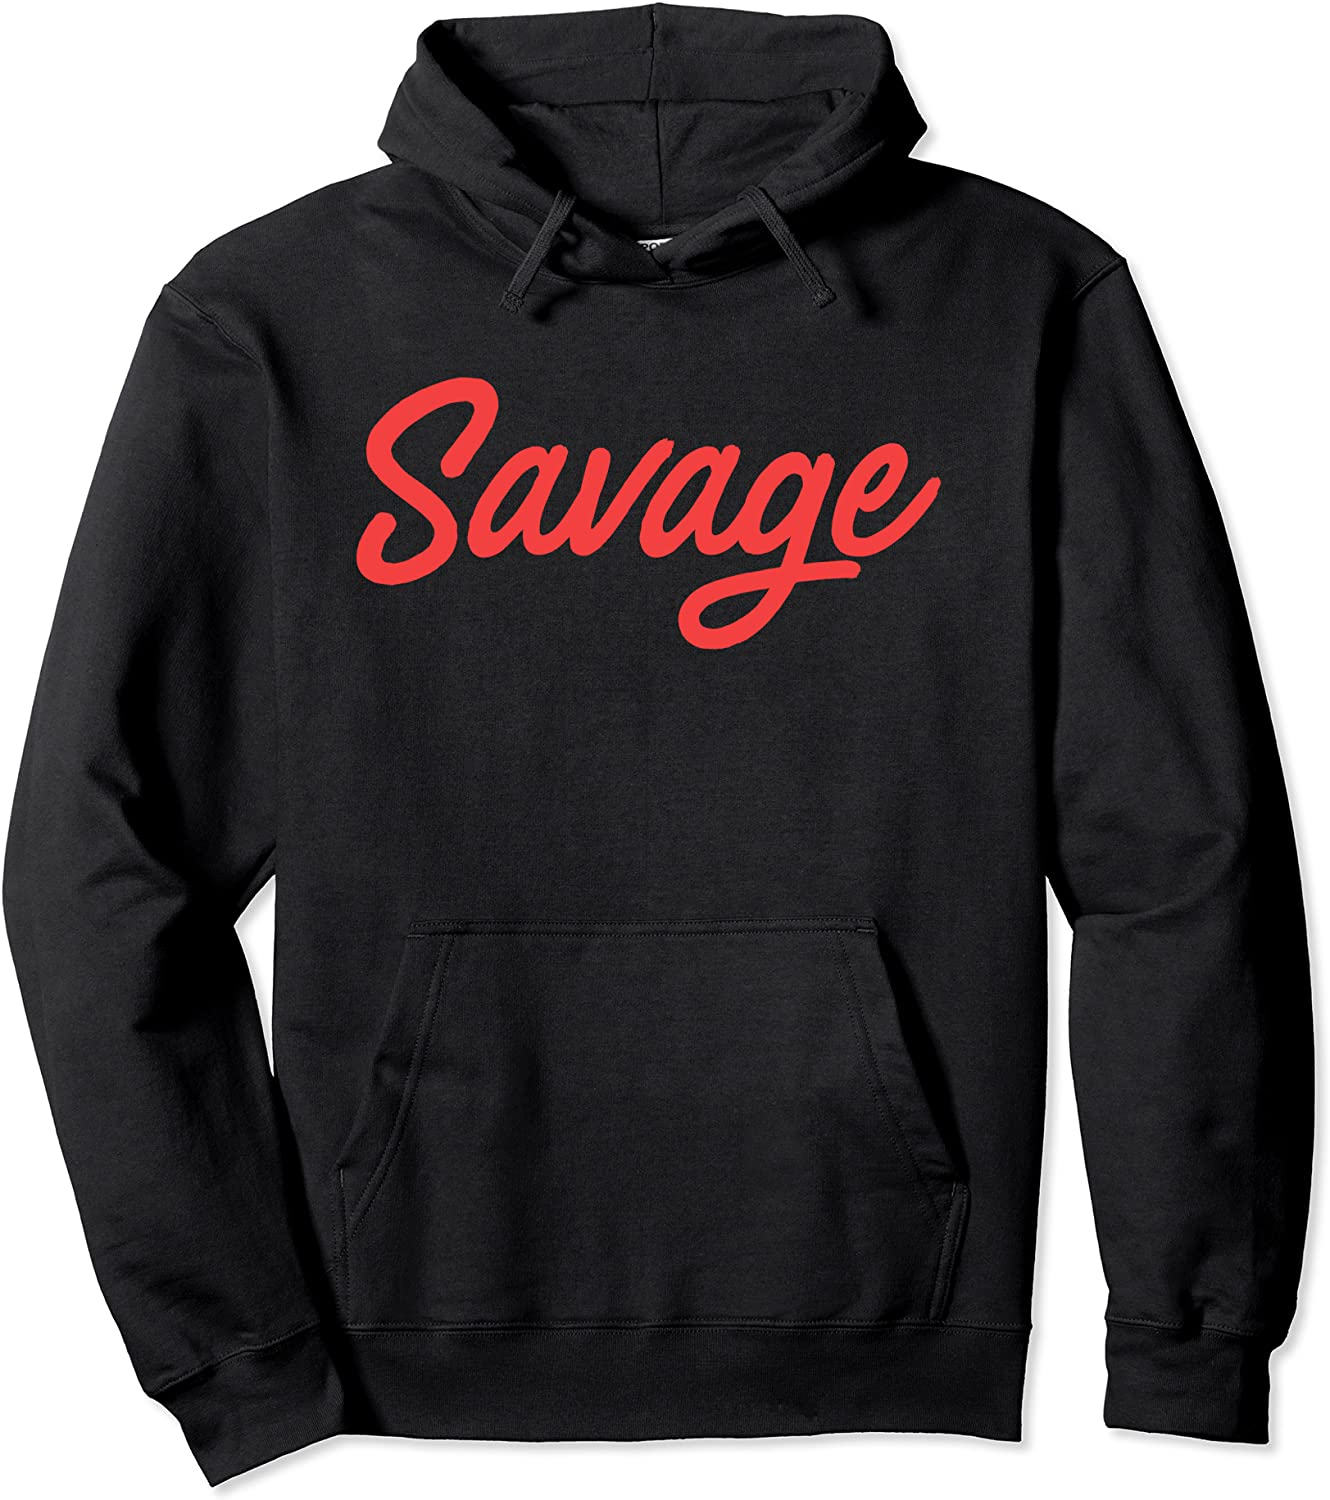 Savage Pullover Denver Mall Hoodie Max 65% OFF